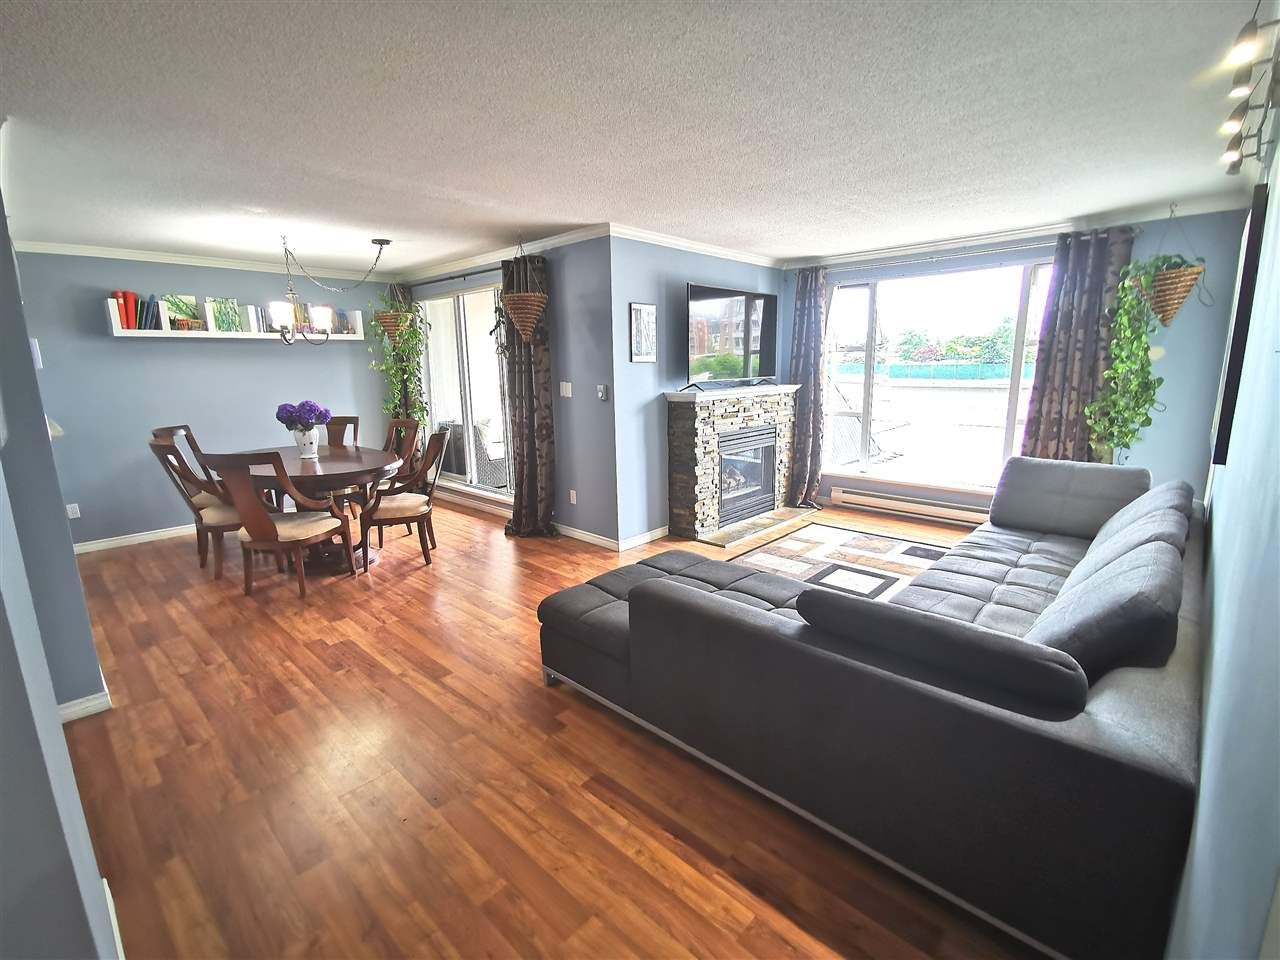 """Main Photo: 301 1180 PINETREE Way in Coquitlam: North Coquitlam Condo for sale in """"FRONTENAC TOWER"""" : MLS®# R2386668"""